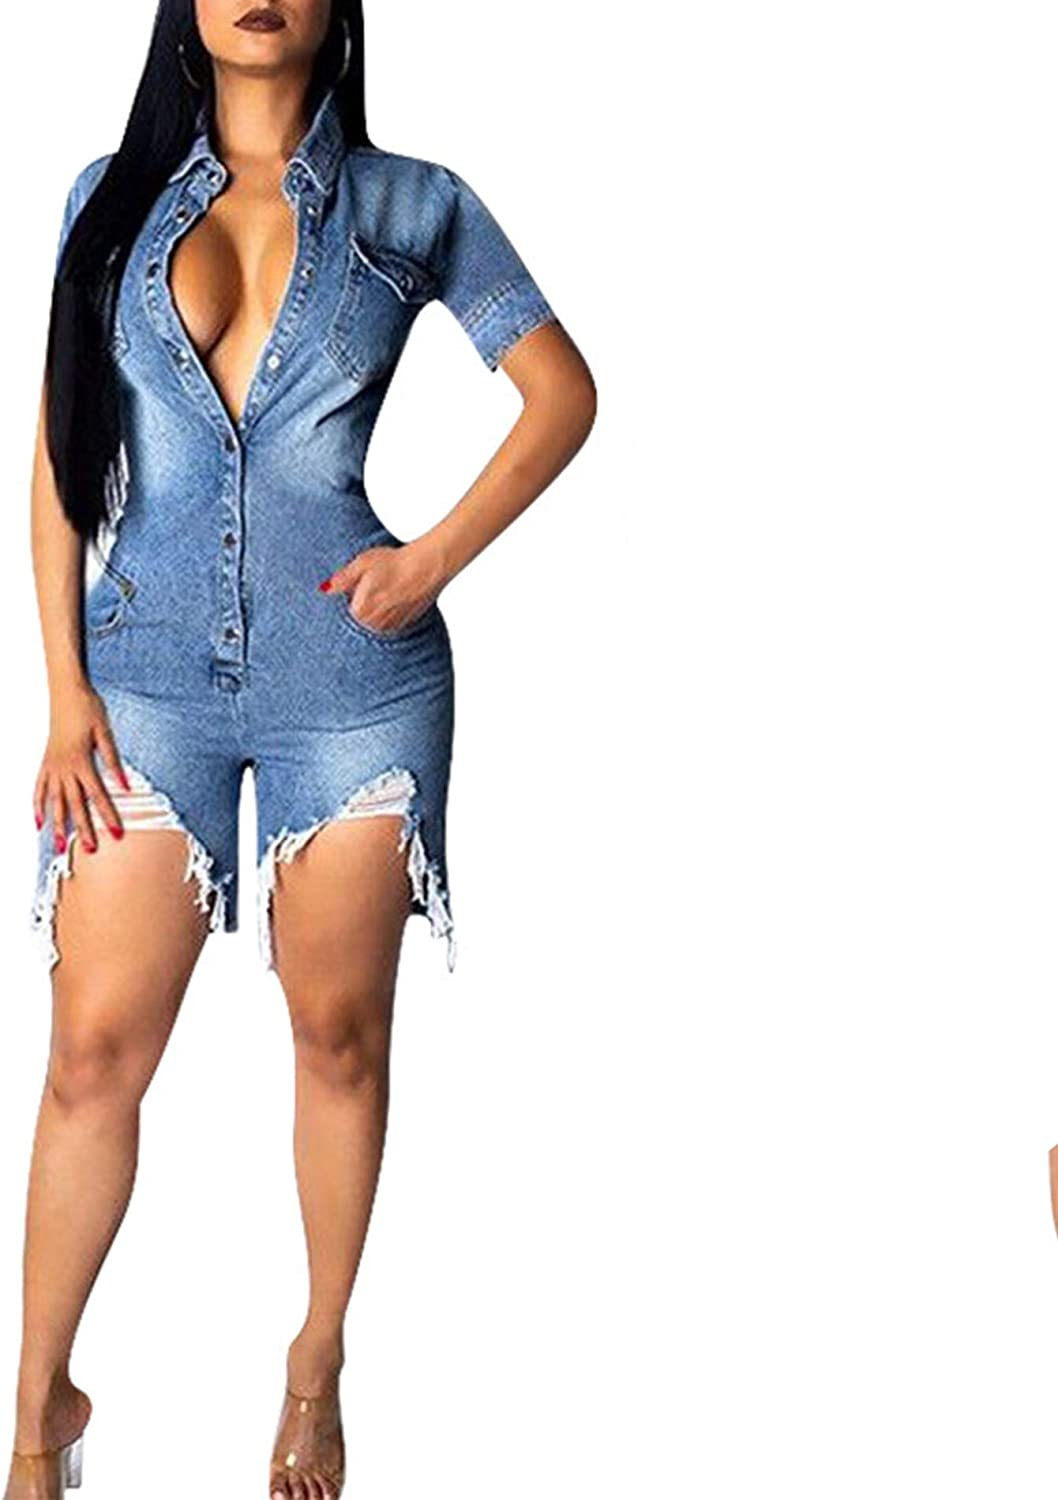 IyMoo Womens Sexy Jeans Genuine Over item handling ☆ Jumpsuits Down Button - Distresse Ripped